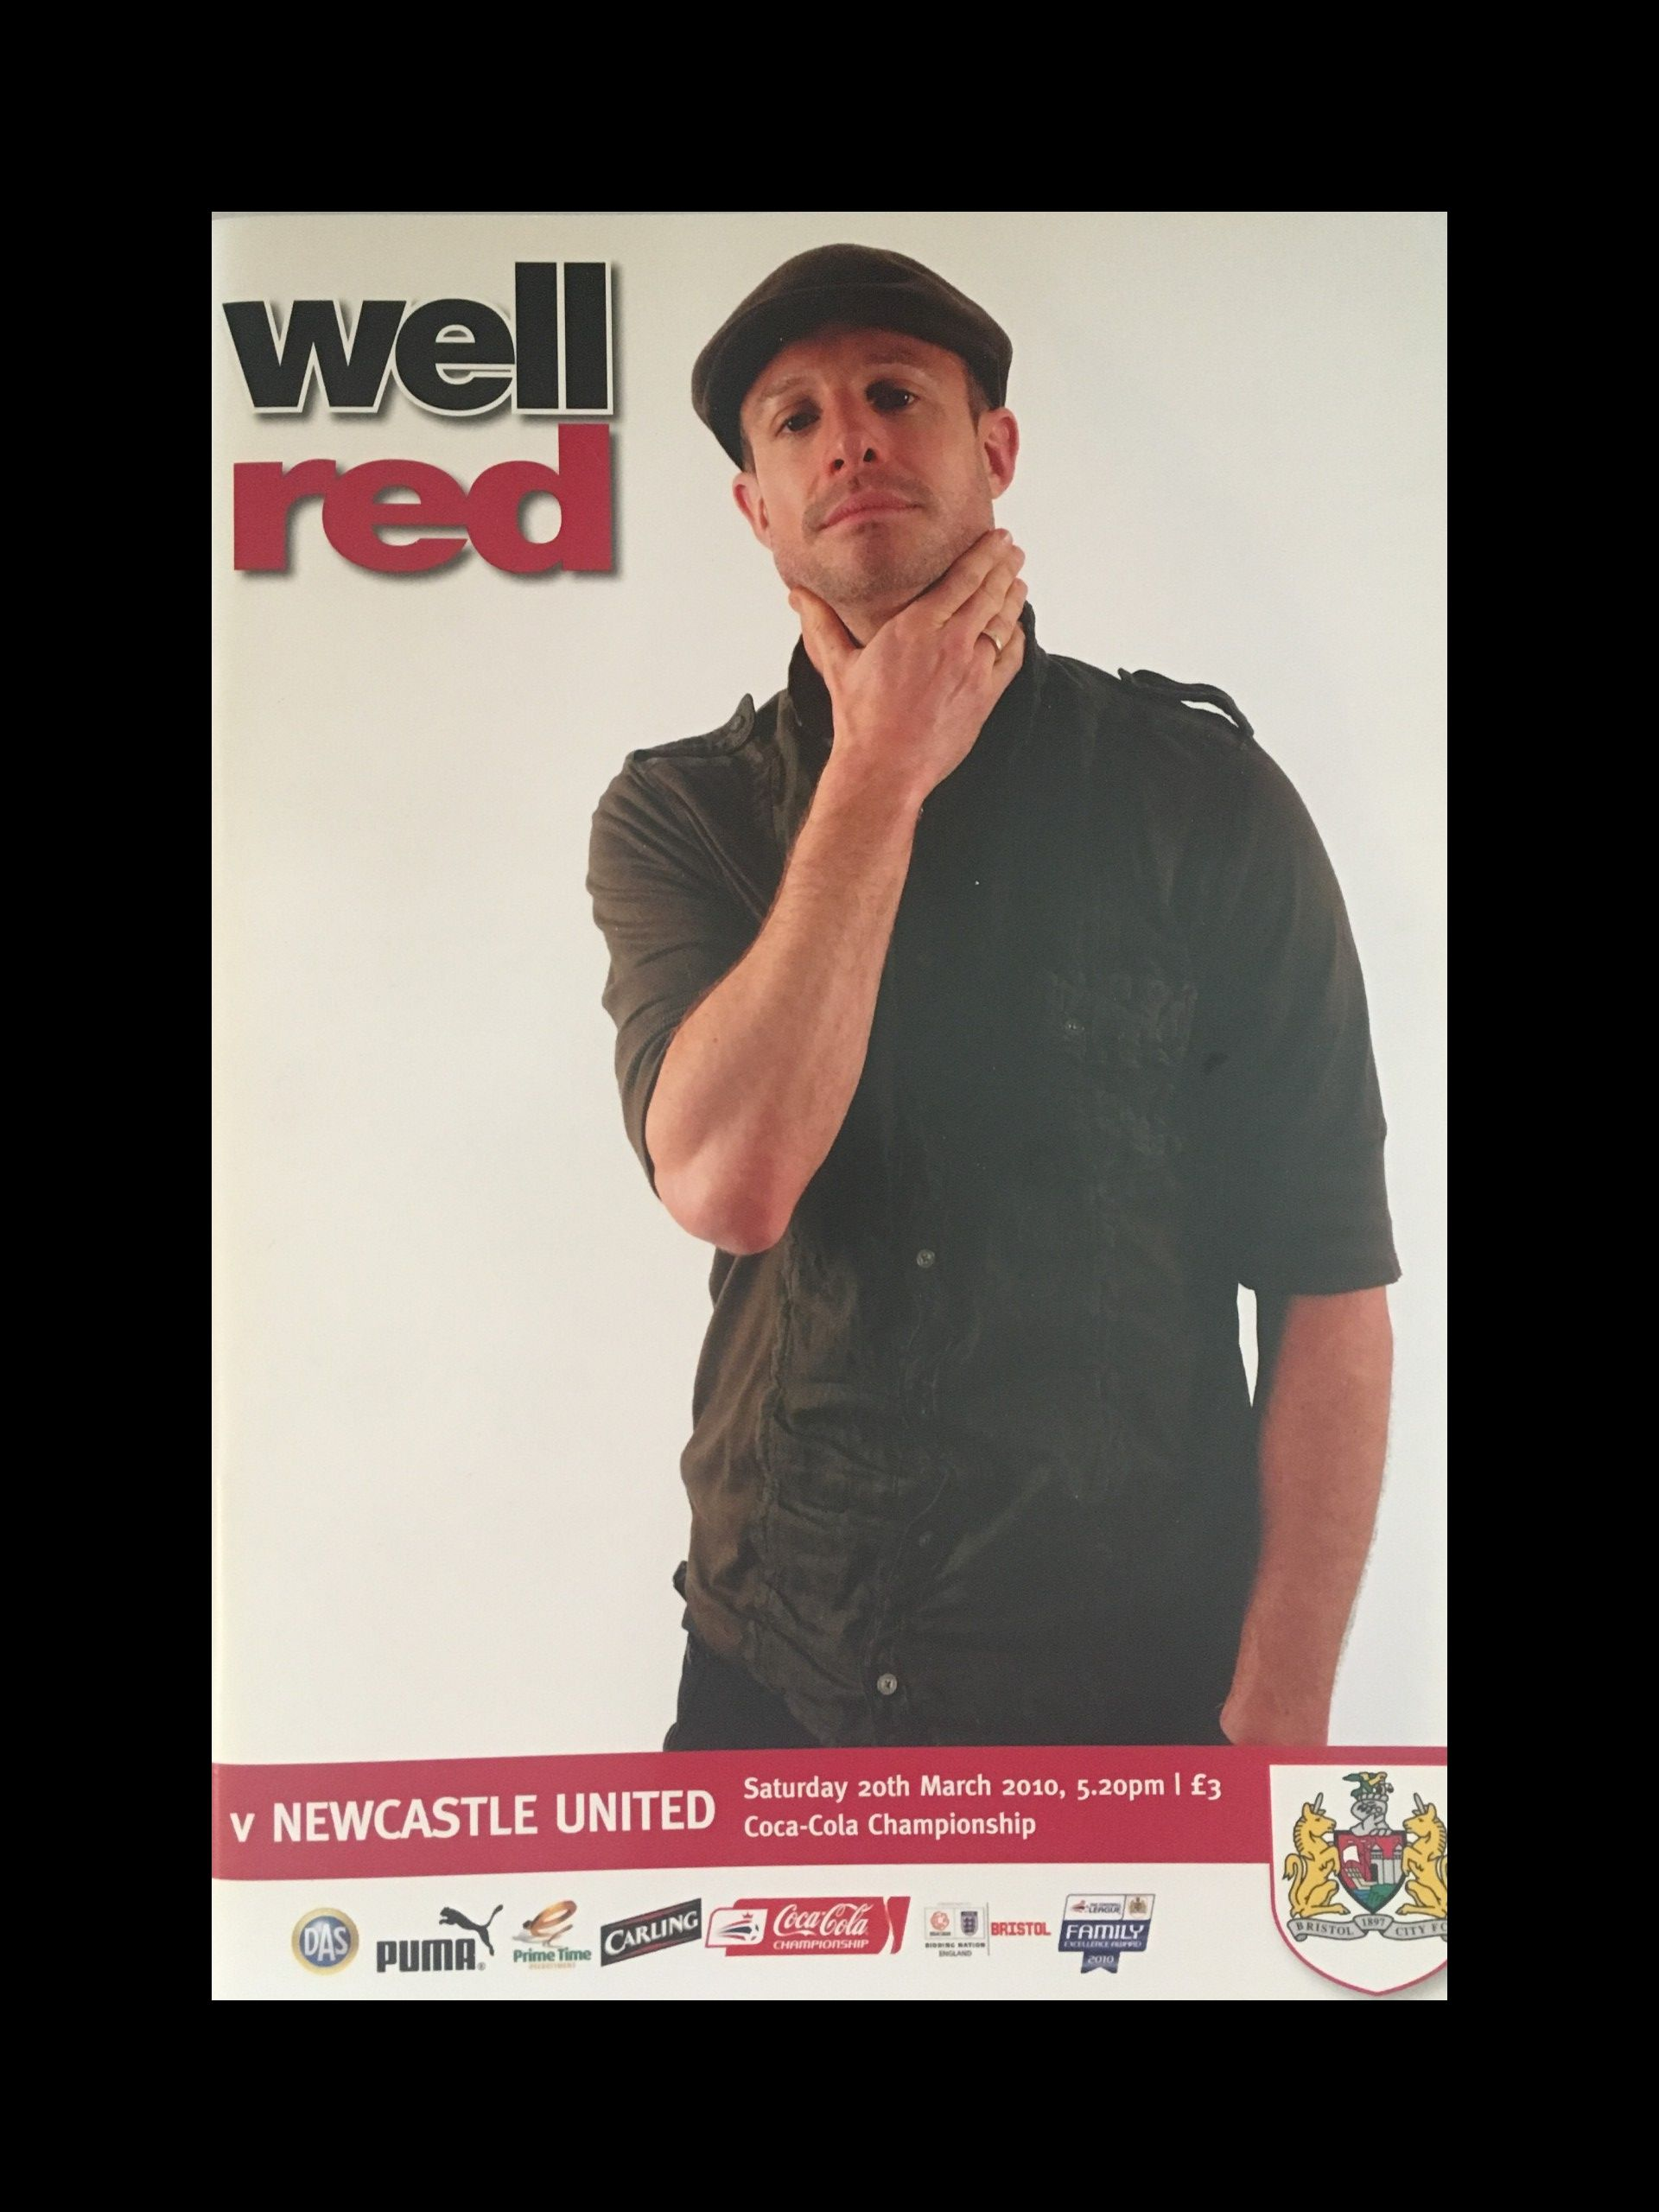 Bristol City v Newcastle United 20-03-2010 Programme